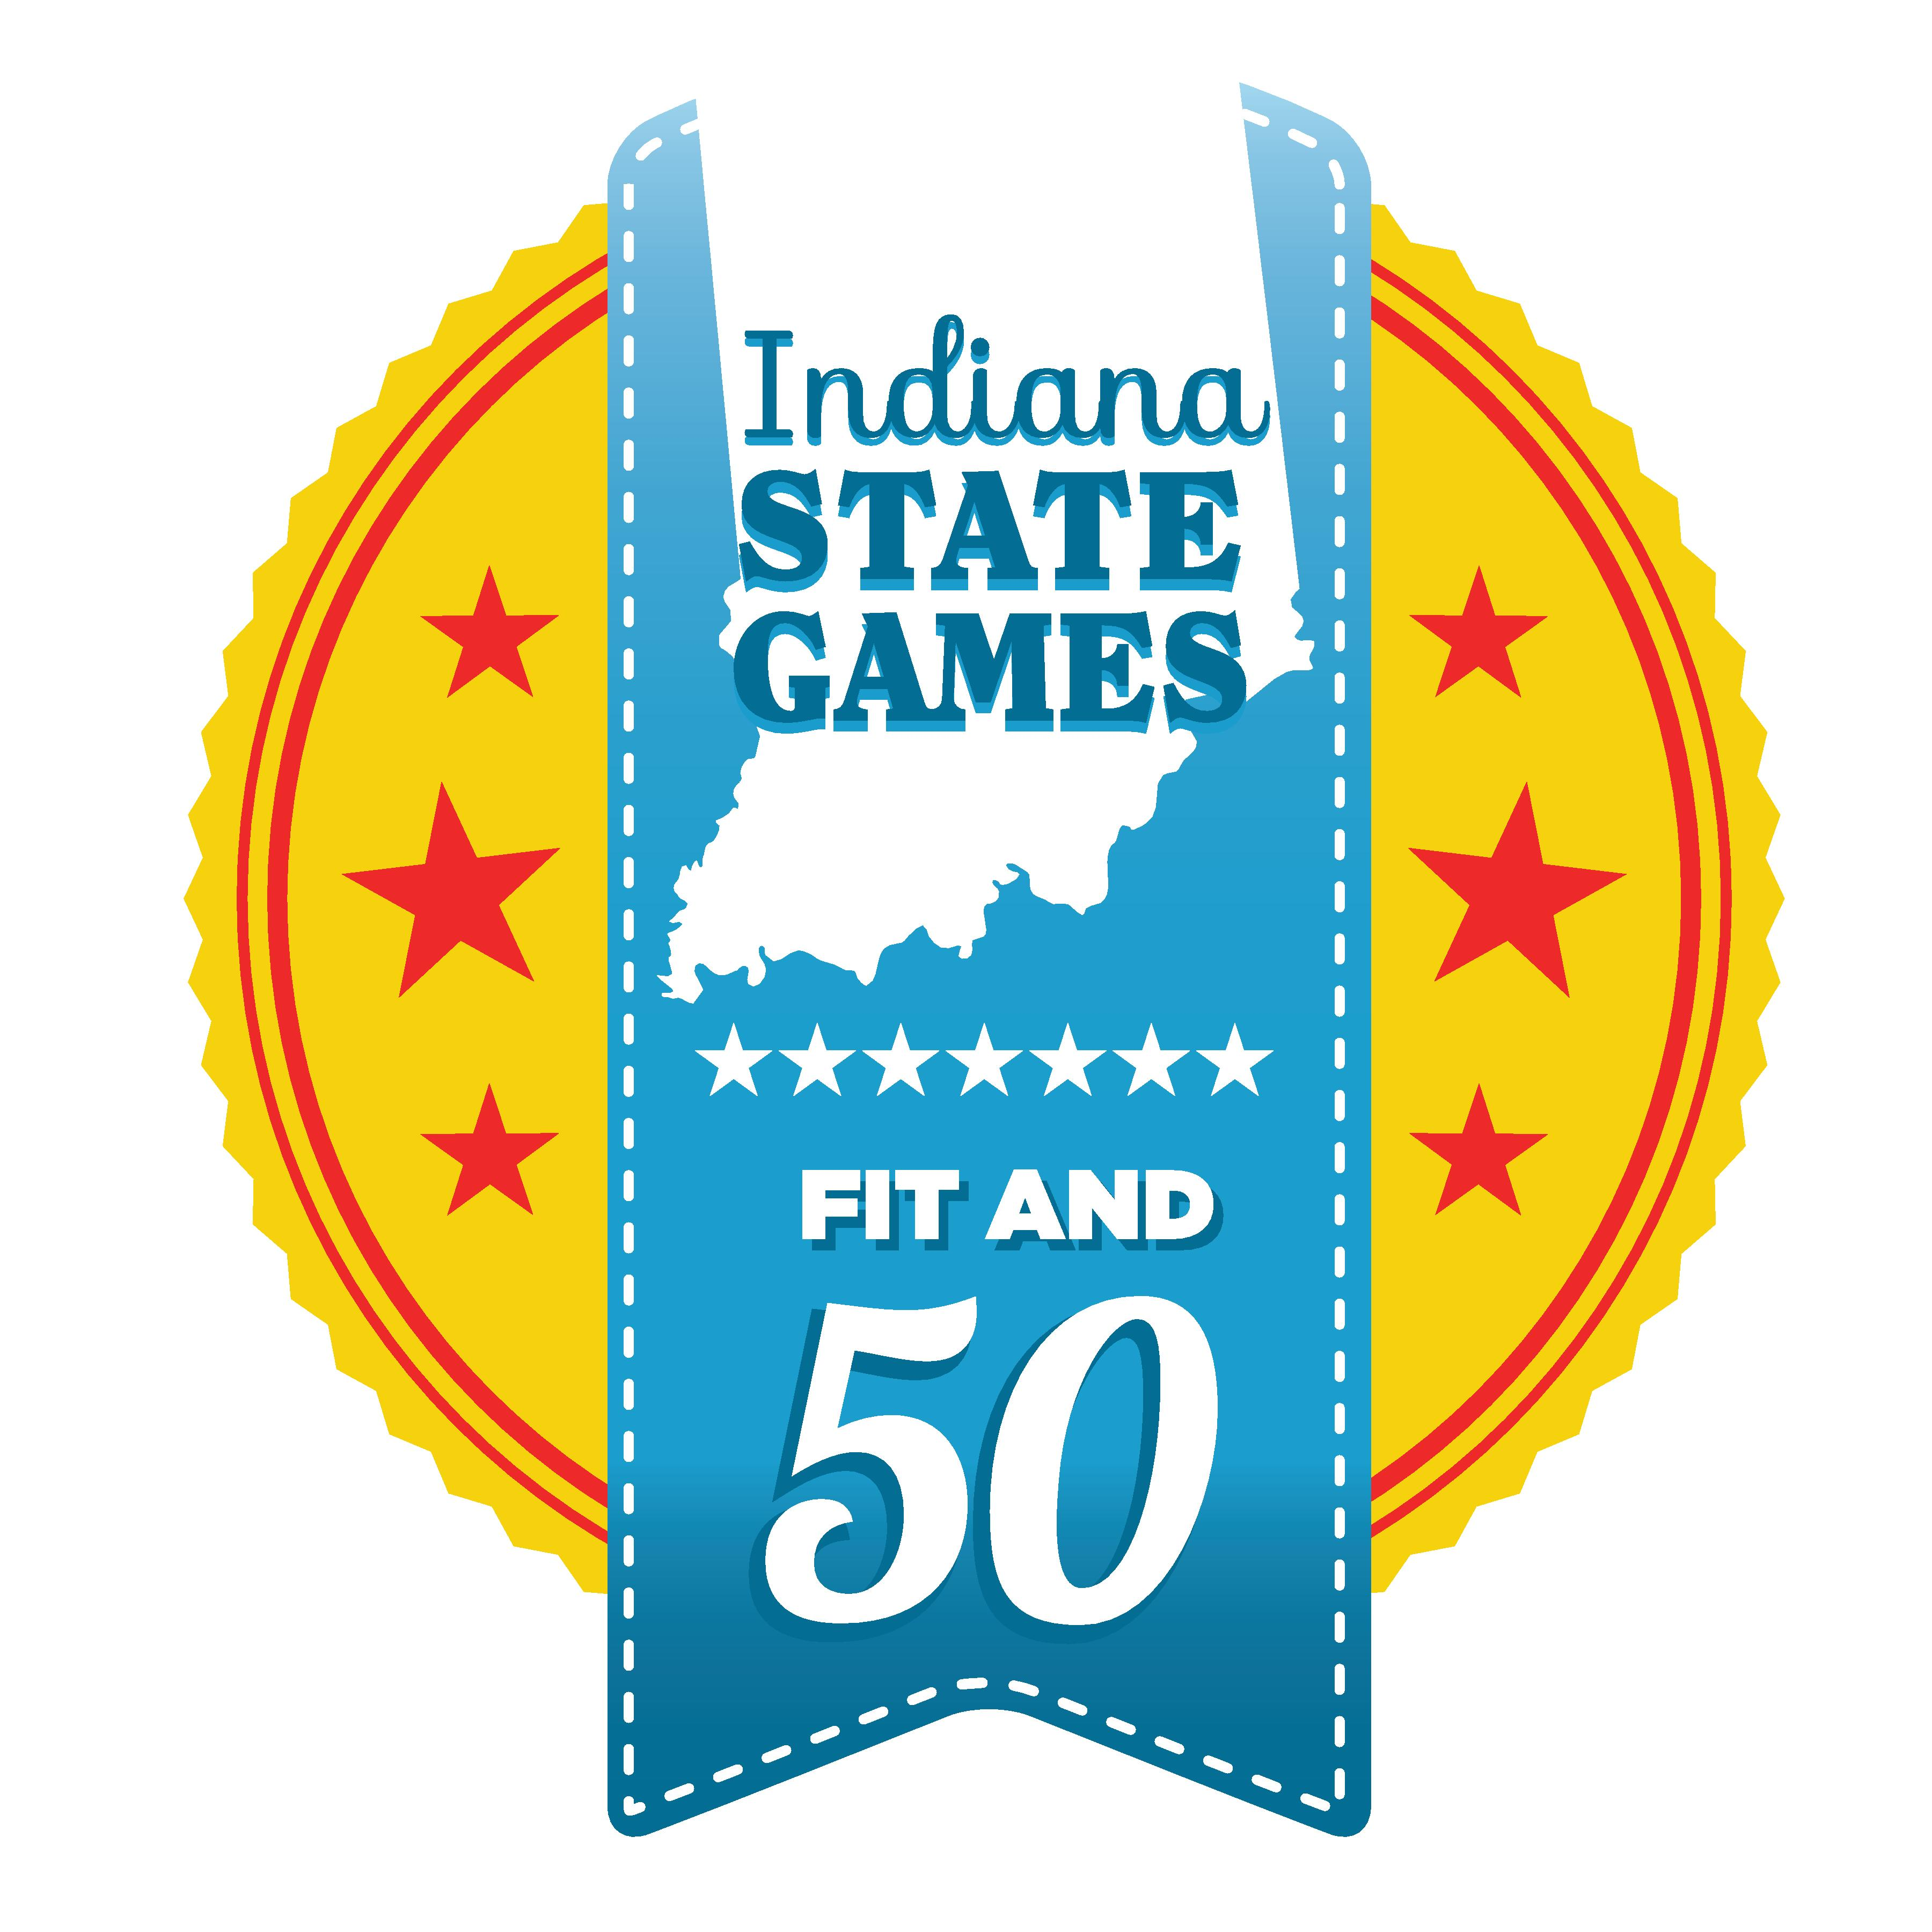 Indiana State Games - Fit and 50